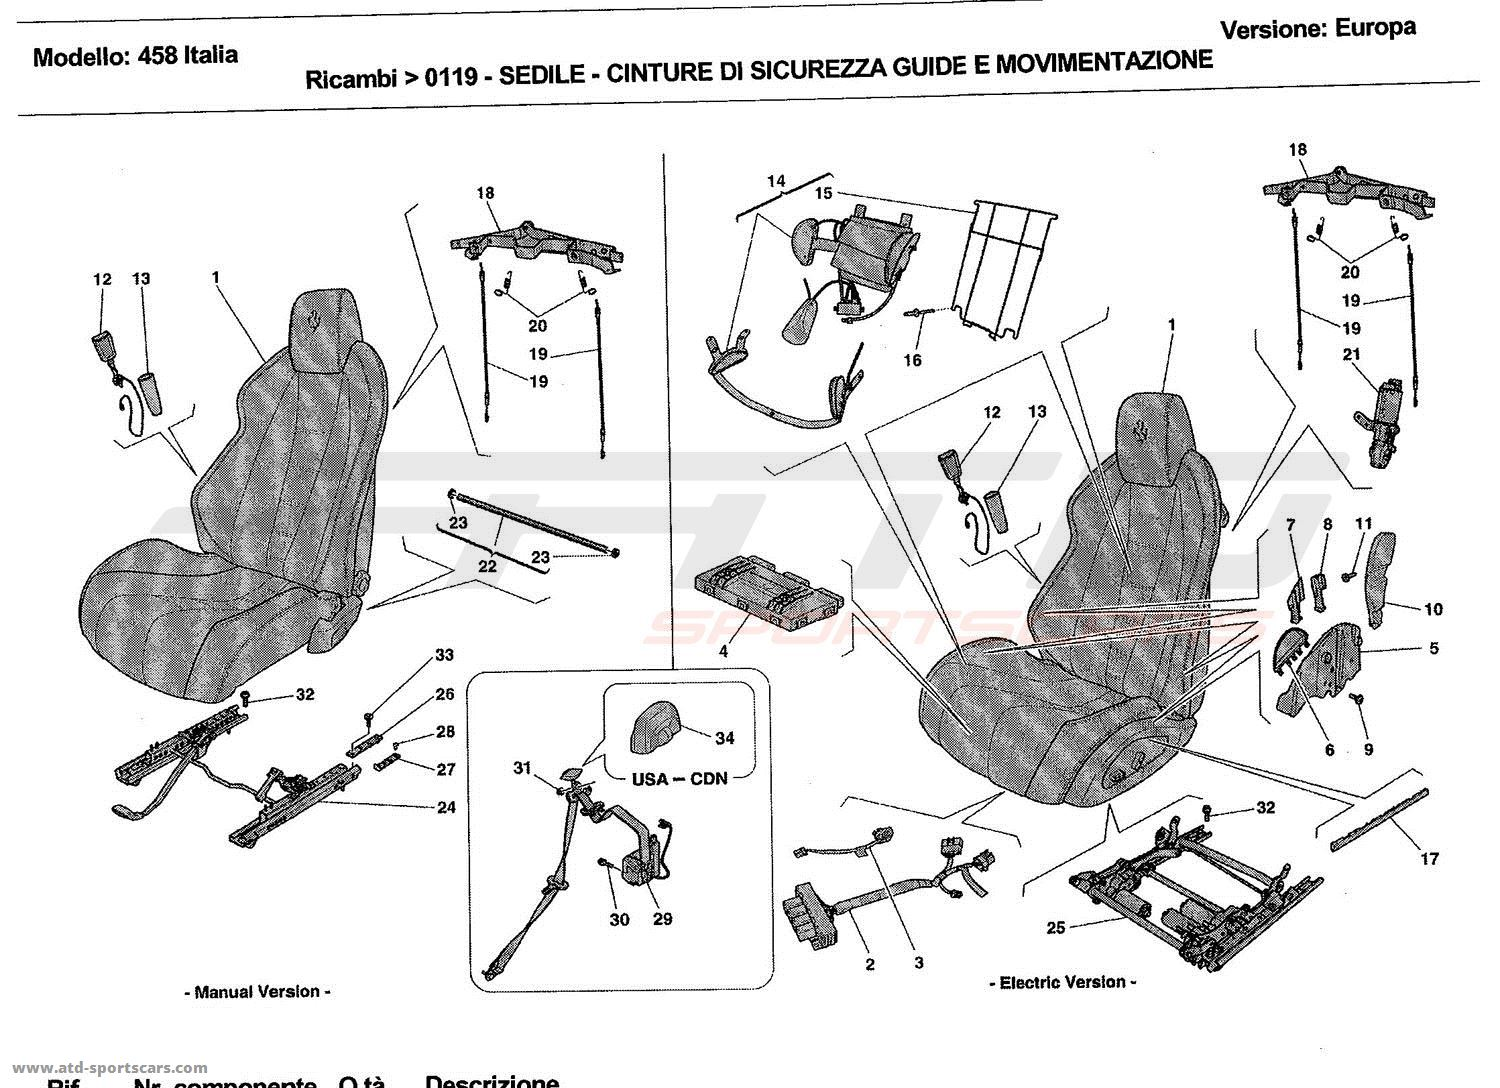 SEATS - SEAT BELTS, GUIDES AND ADJUSTMENT